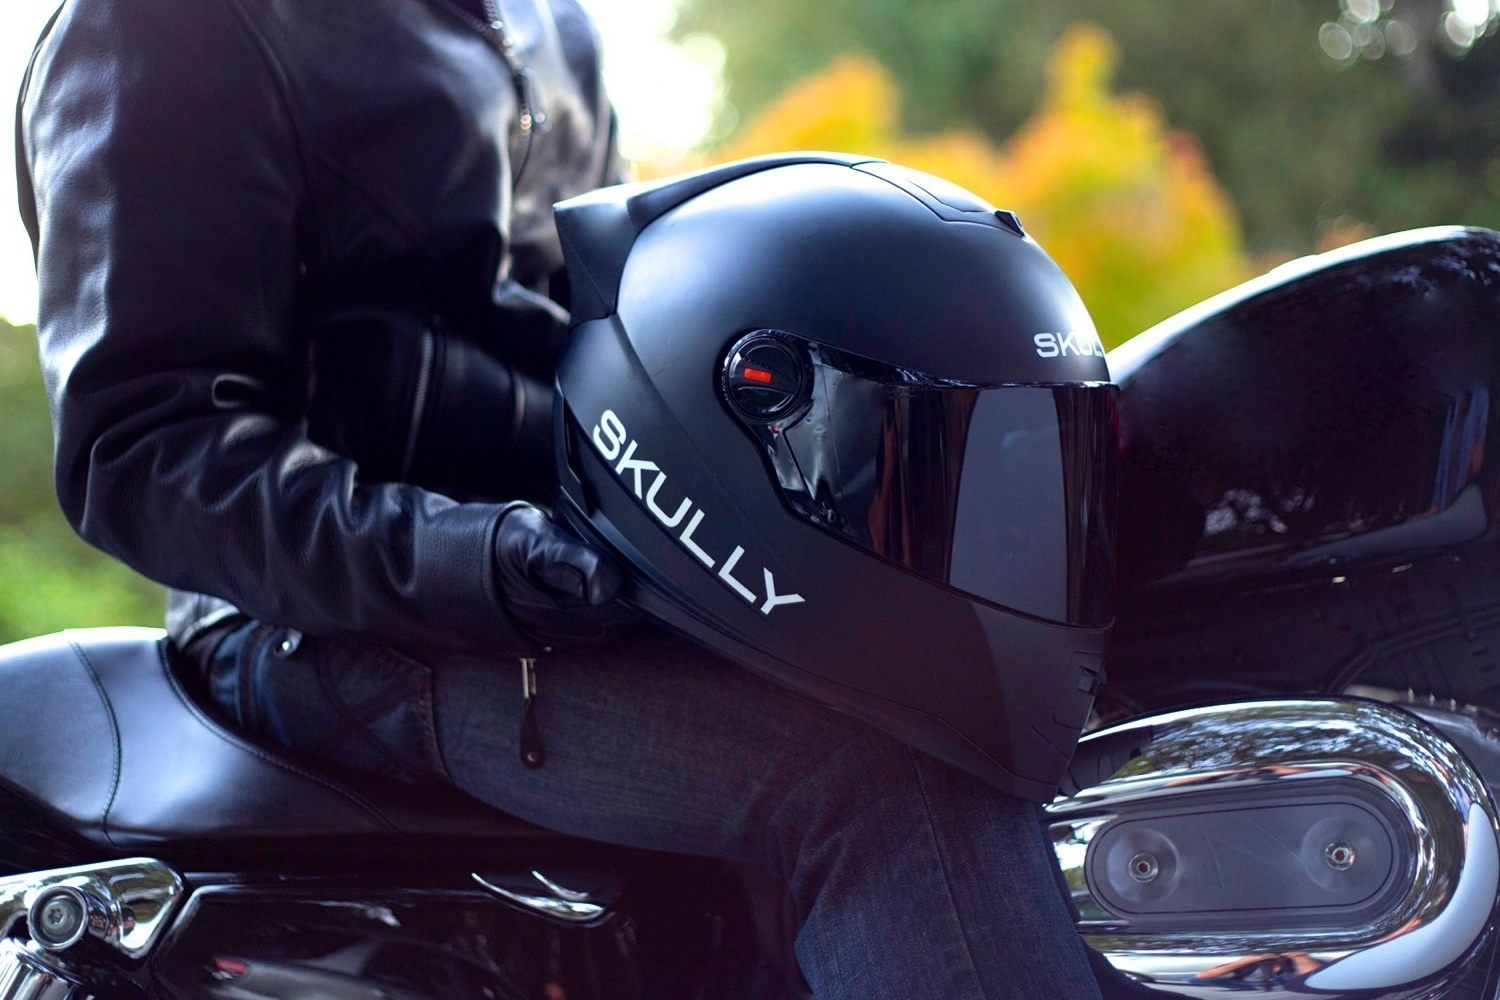 SKULLY Is The Helmet Every Motorcyclist Has Dreamt Of